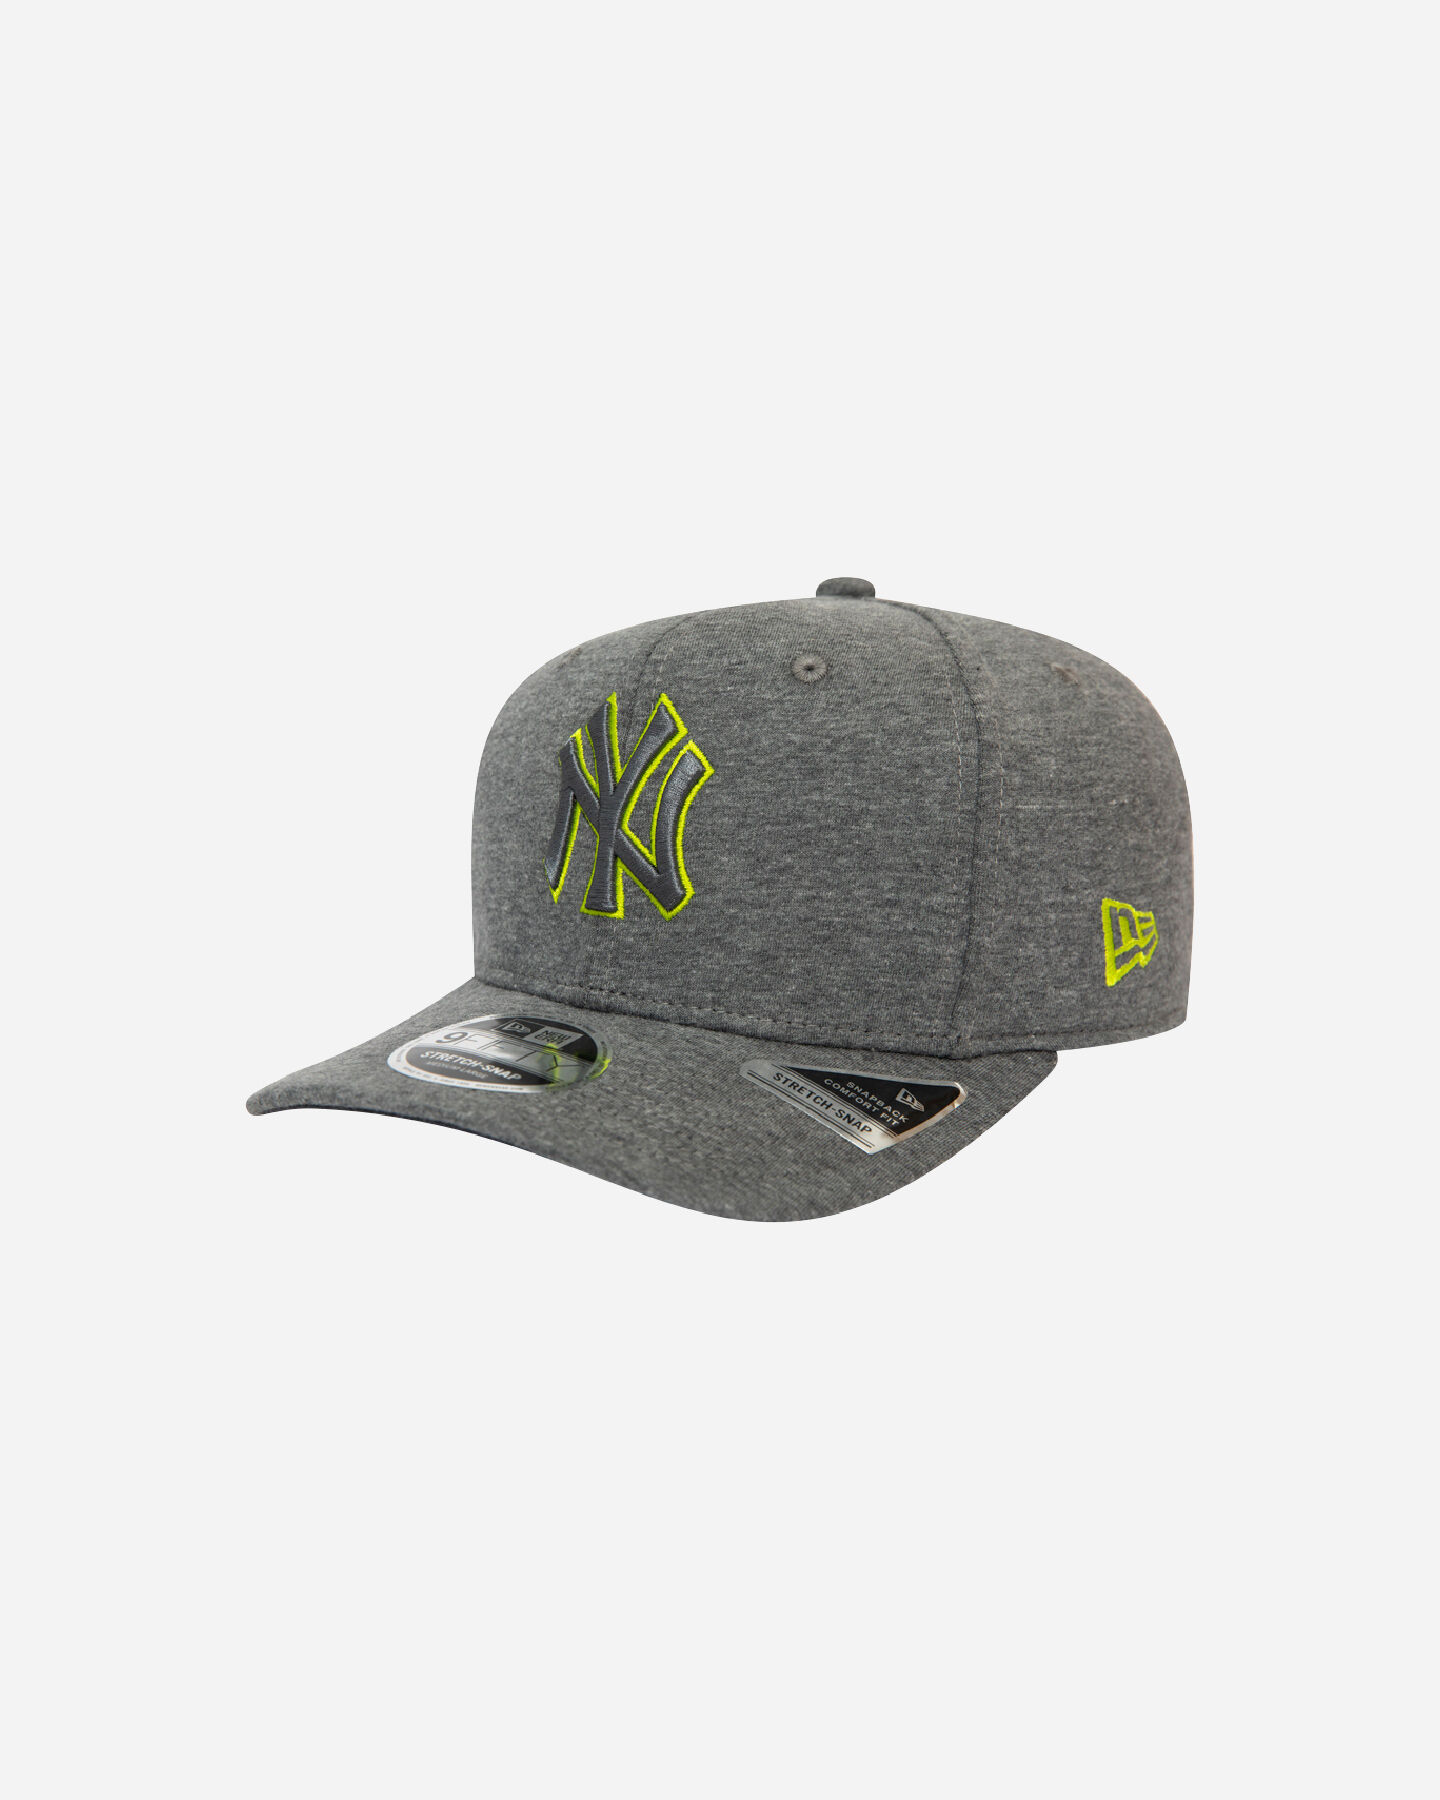 Cappellino NEW ERA 9FIFTY SRETCH SNAP JERSEY S5238866 scatto 0